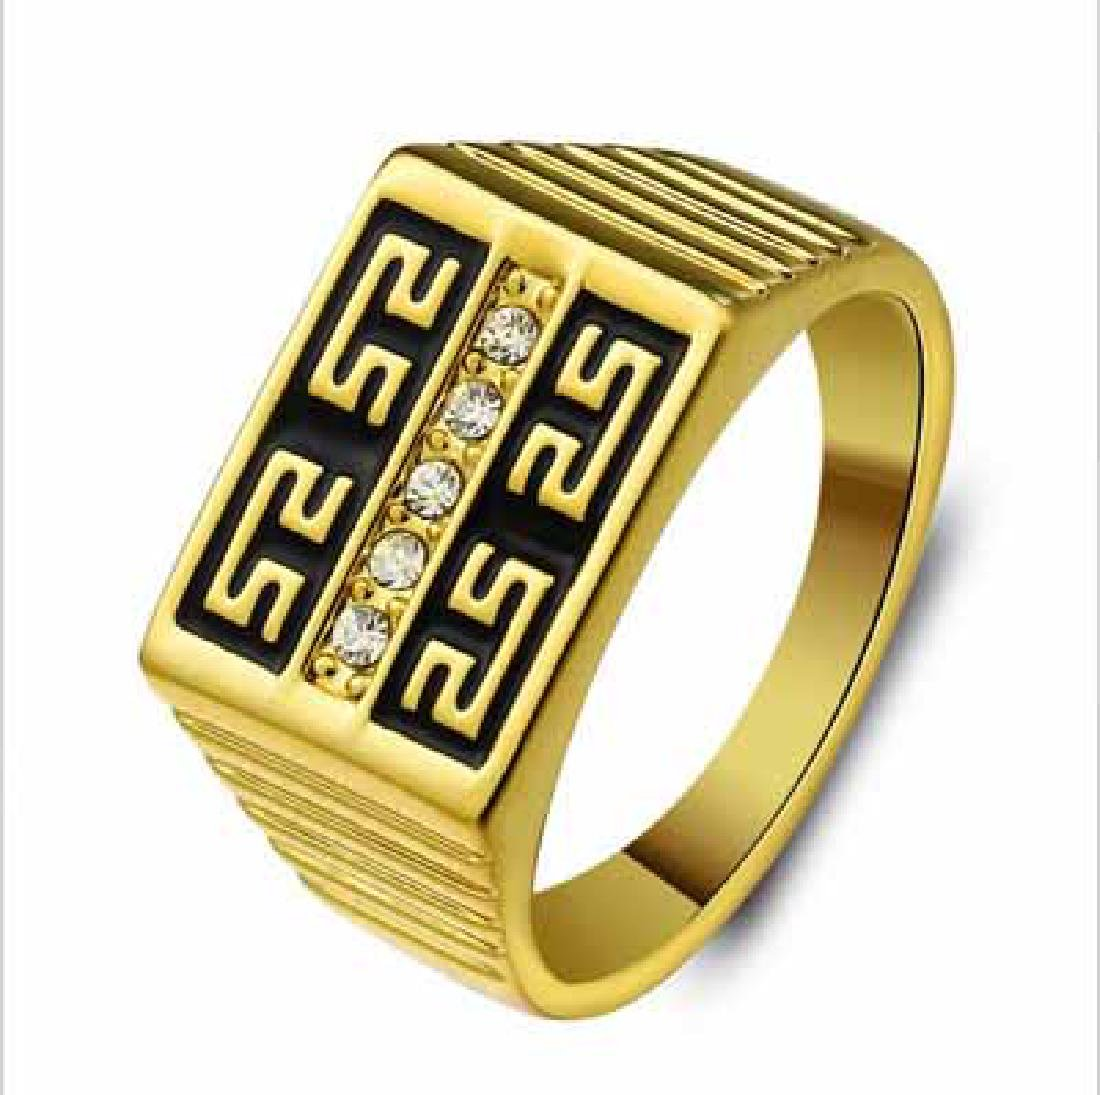 HIGH-GRADE RETRO MENS WALL PATTERN YELLOW GOLD PLATED T